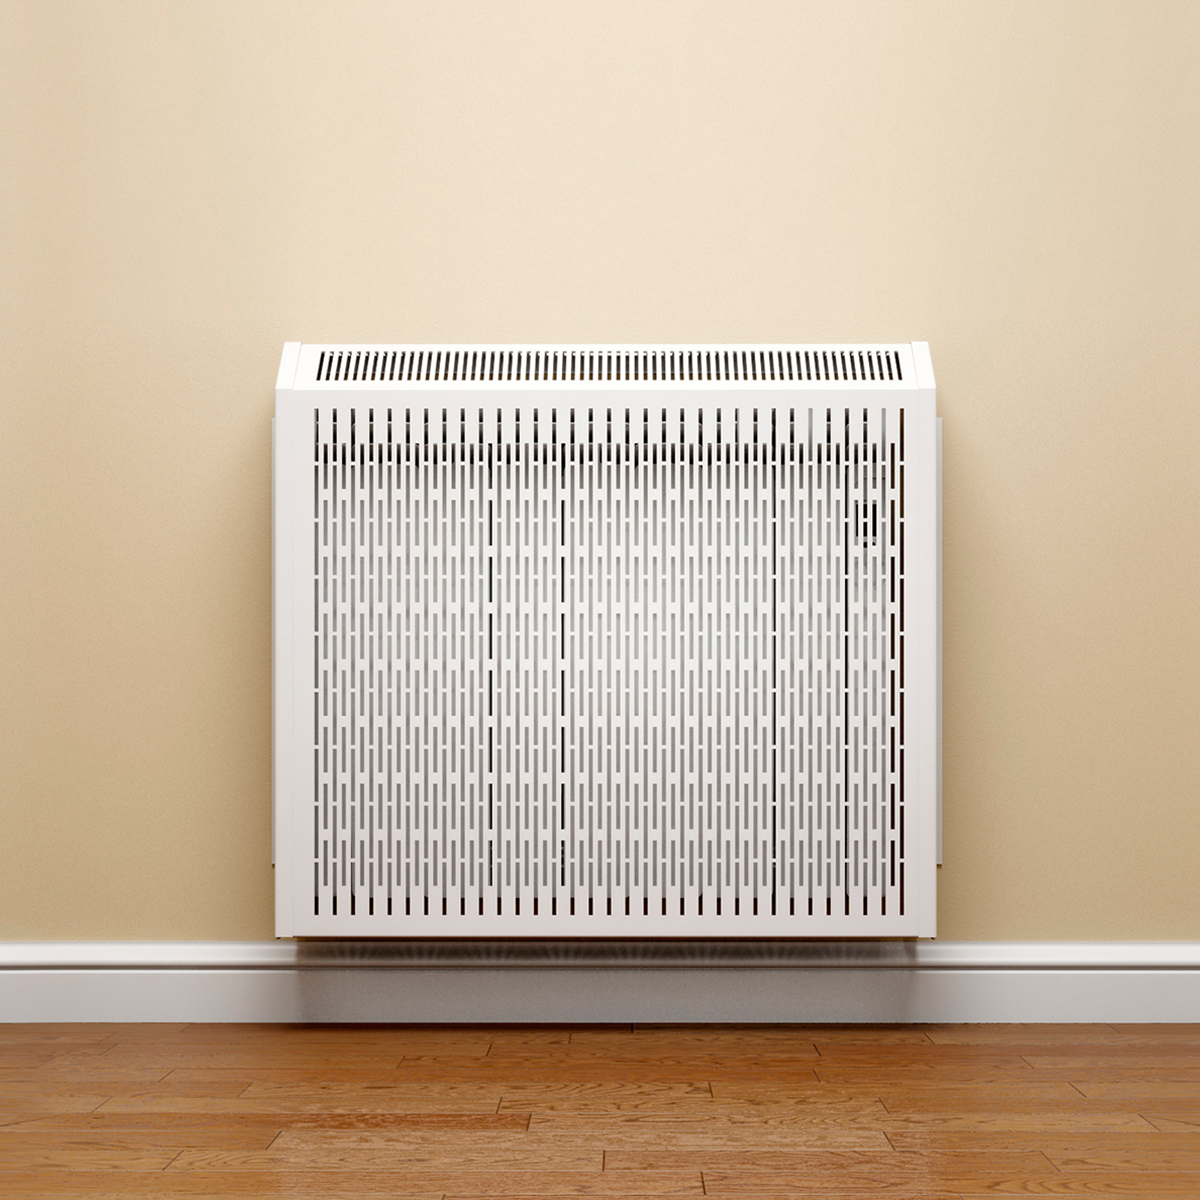 Rointe radiator covers come in white or black